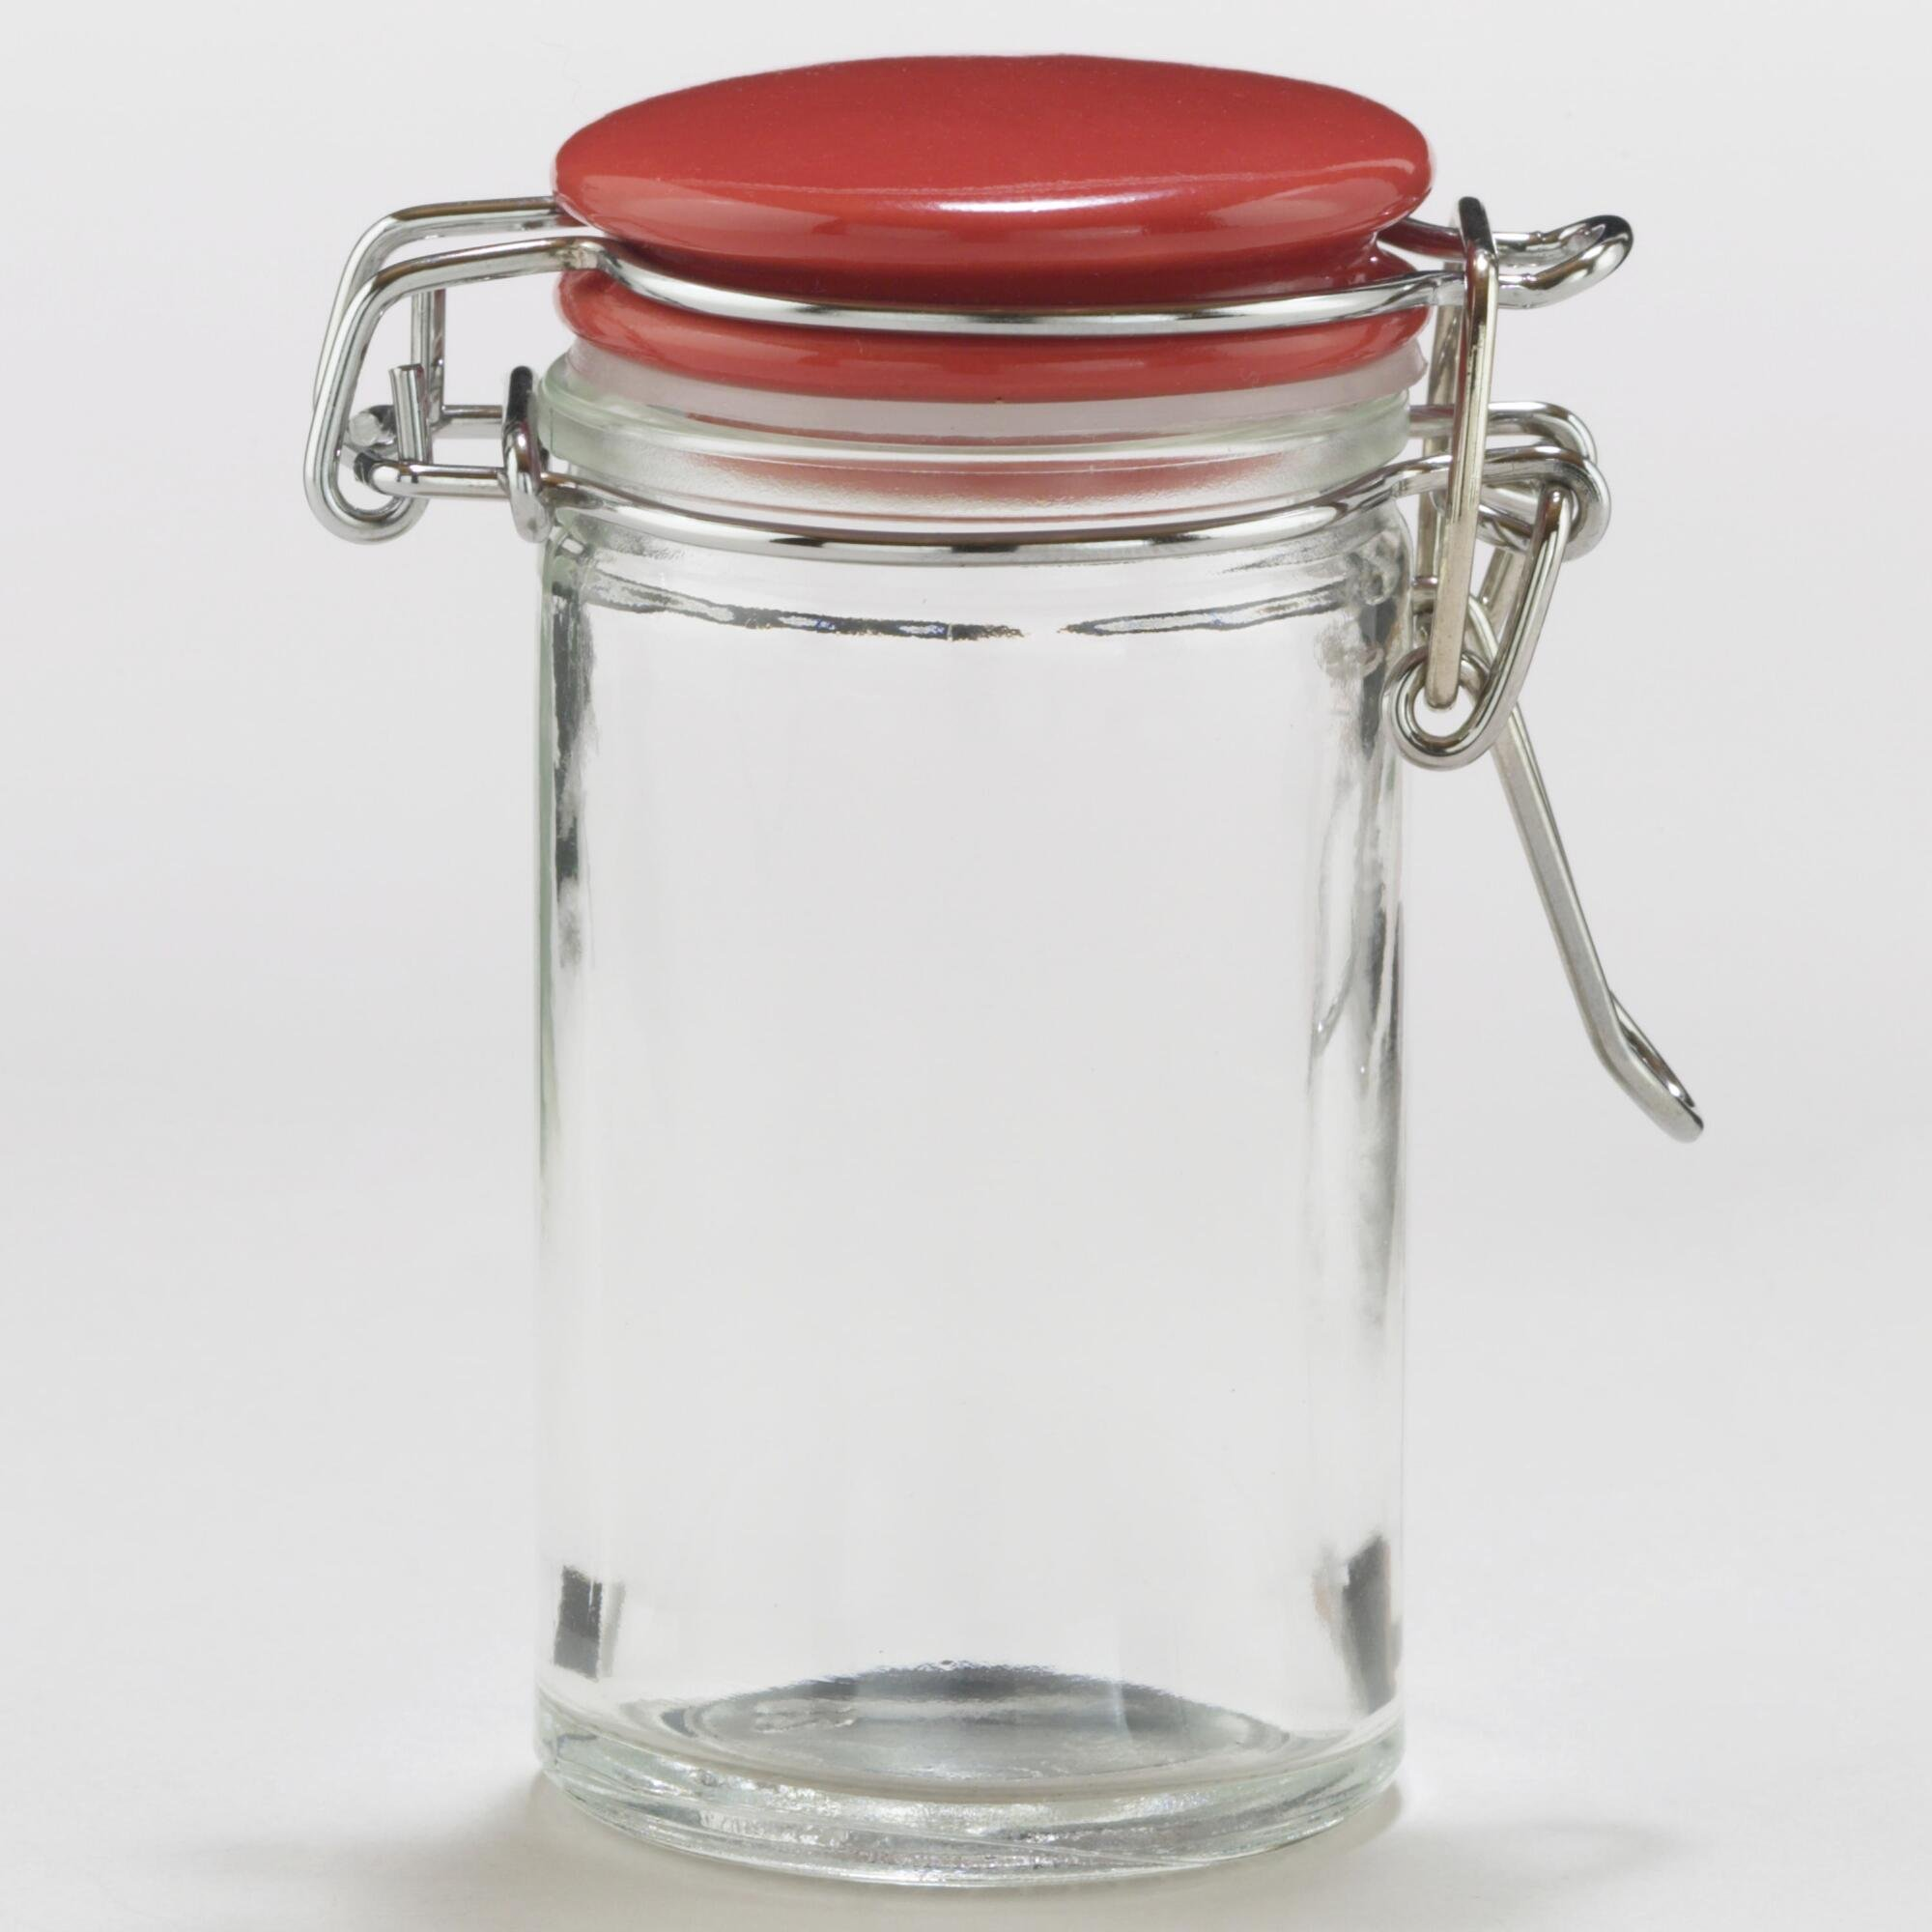 Spice Jars With Red Ceramic Lids 3 0 Oz Capacity Tall Airtight Seals Ebay